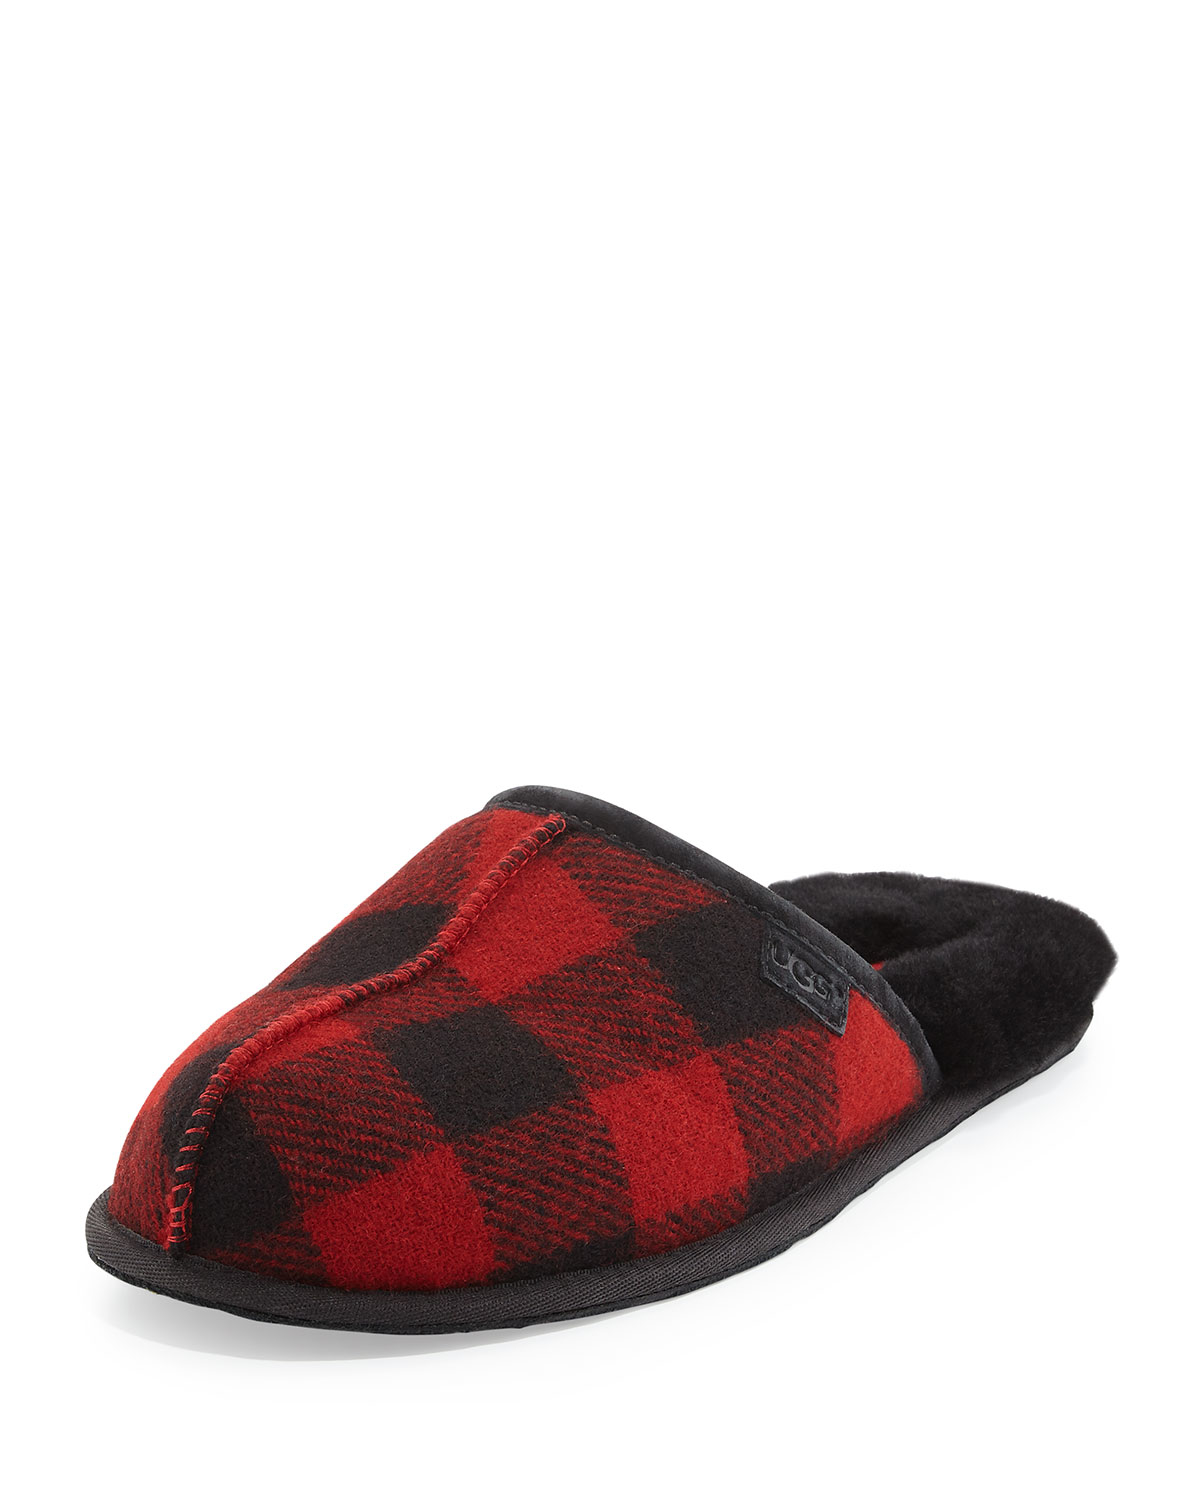 Ugg Scuff Buffalo Plaid Slipper In Red For Men Lyst